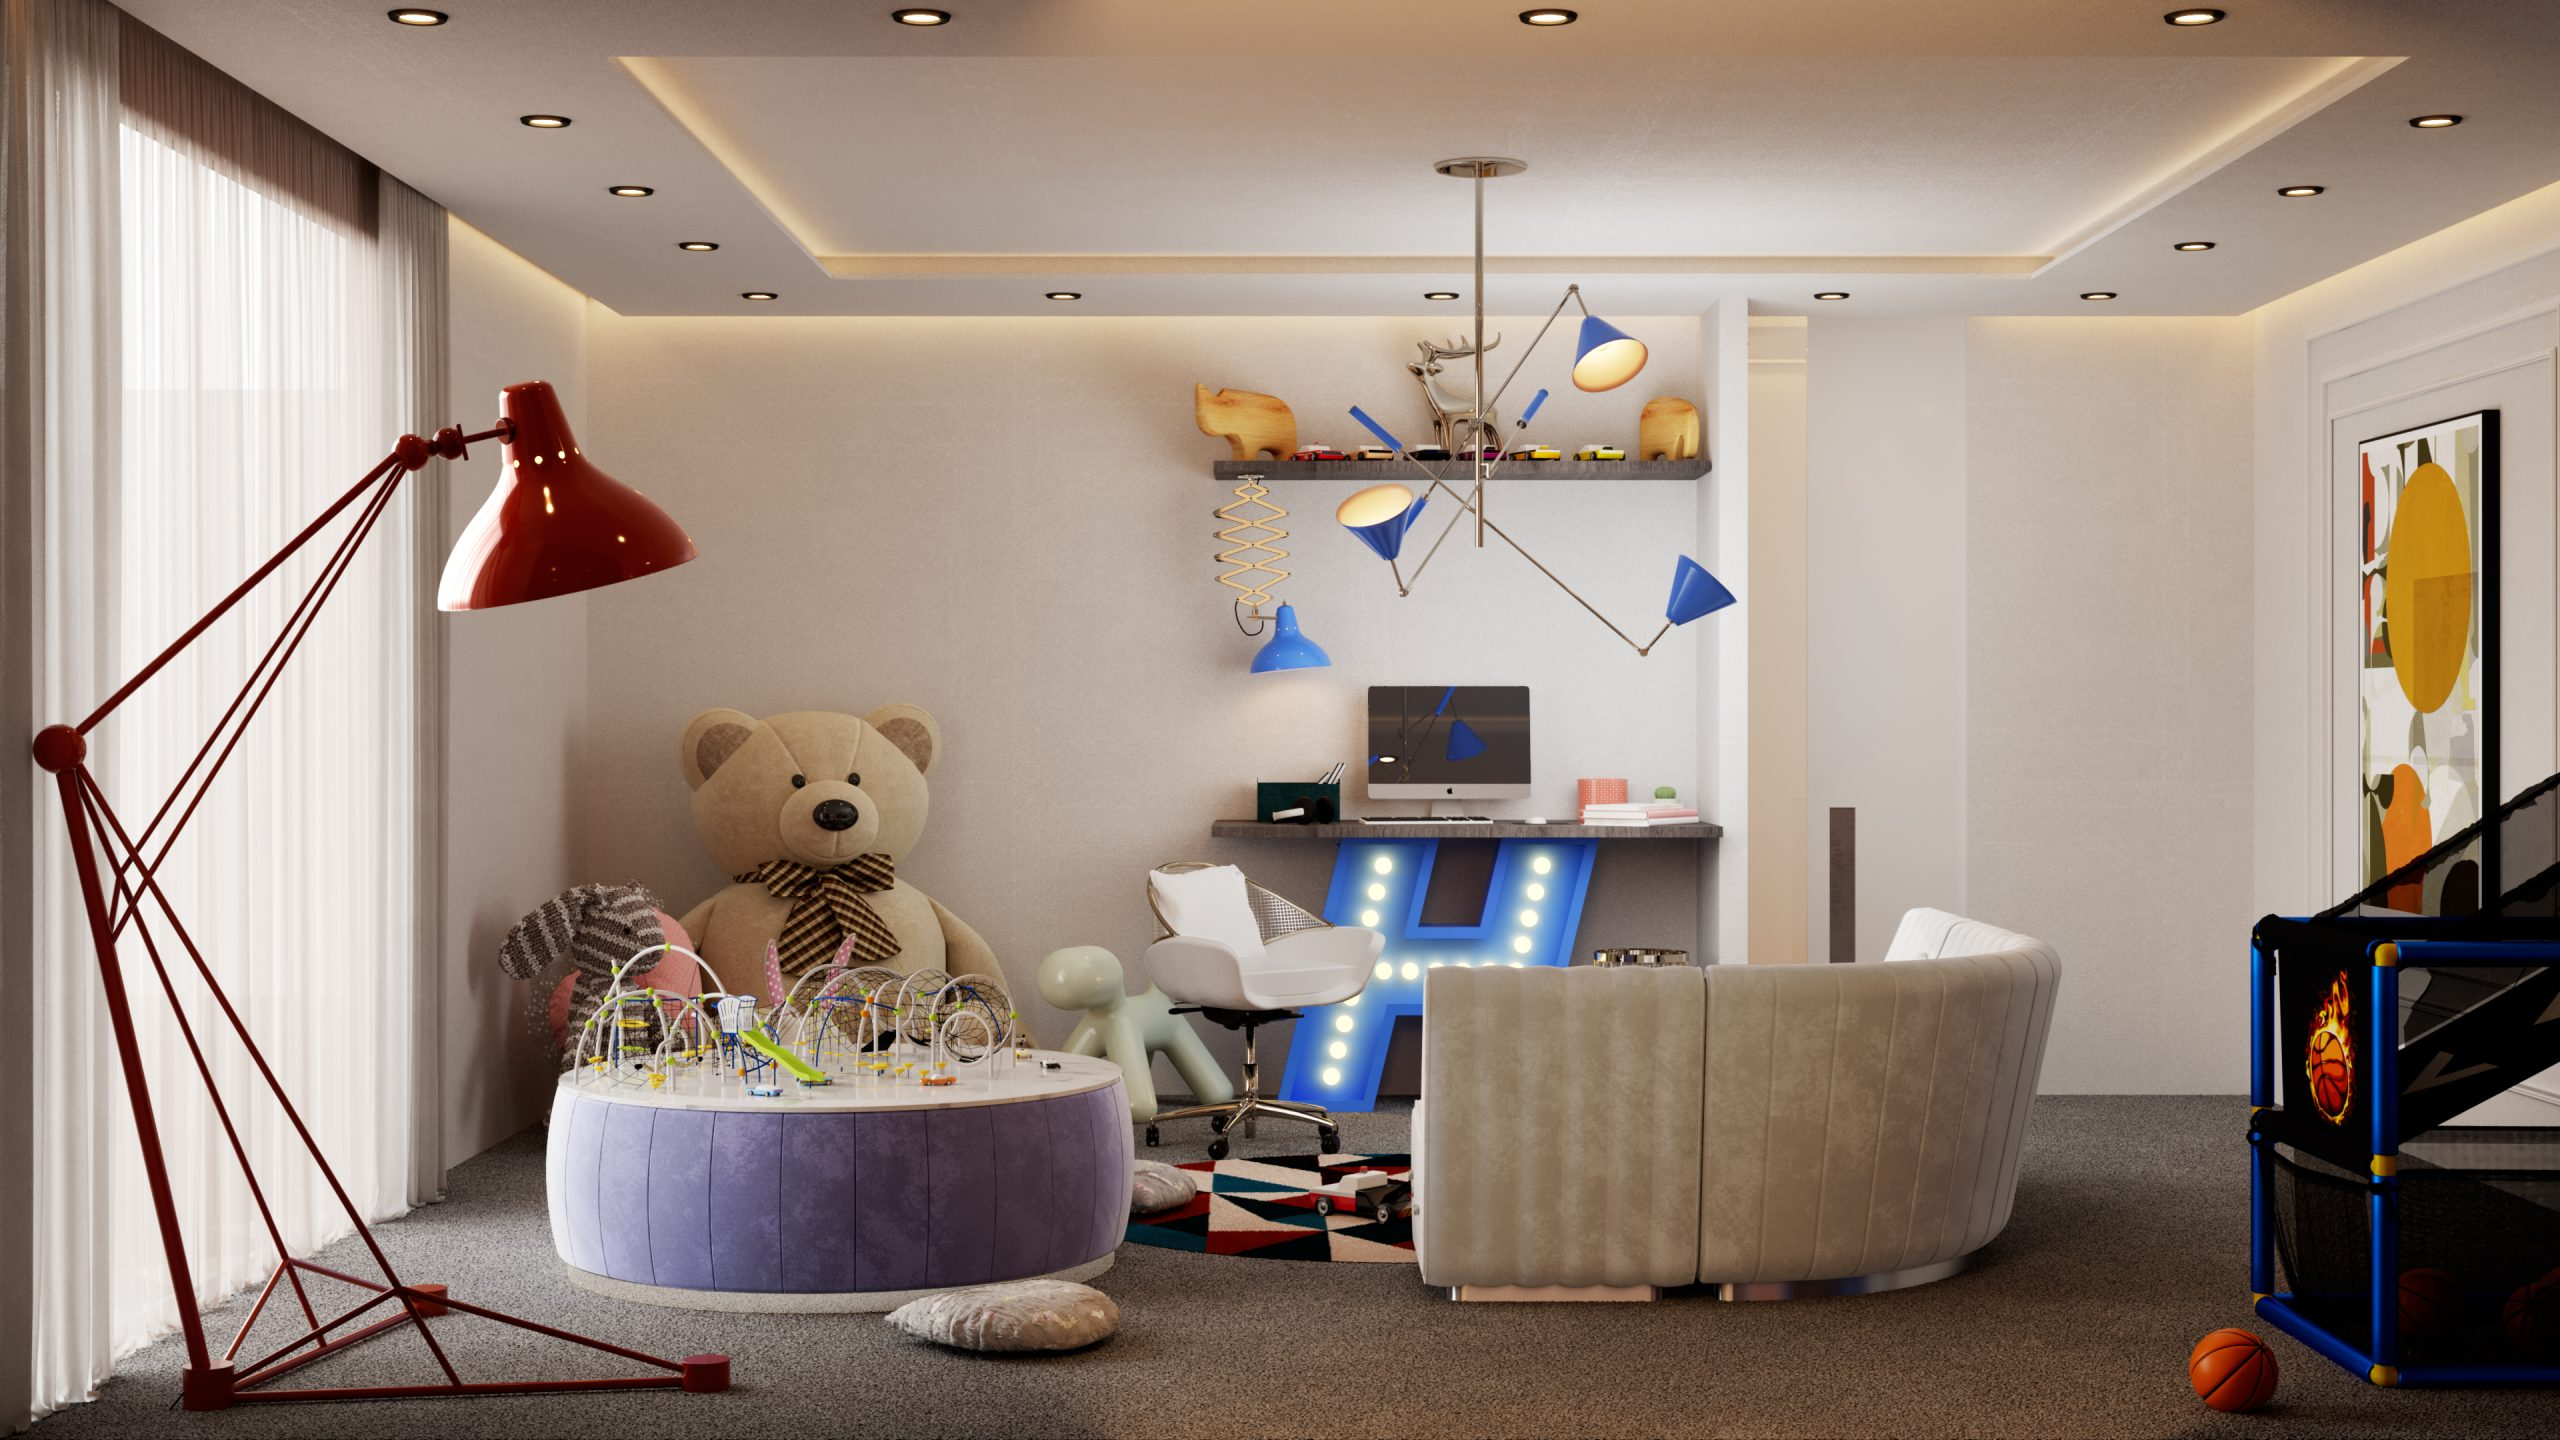 Dreamy Mid-Century Modern Playroom In Our NYC Apartment